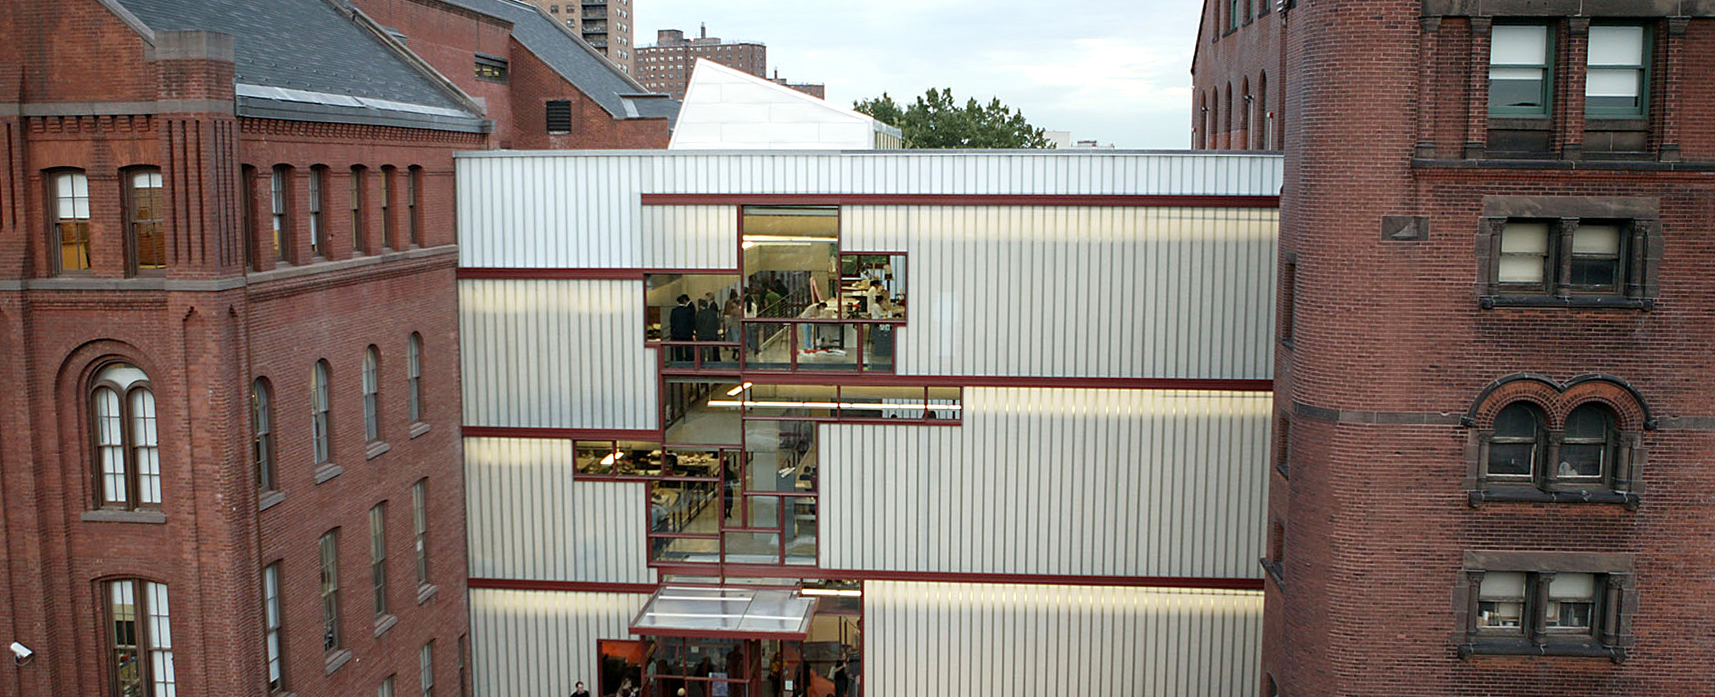 Delicieux Design Building At Pratt Campus